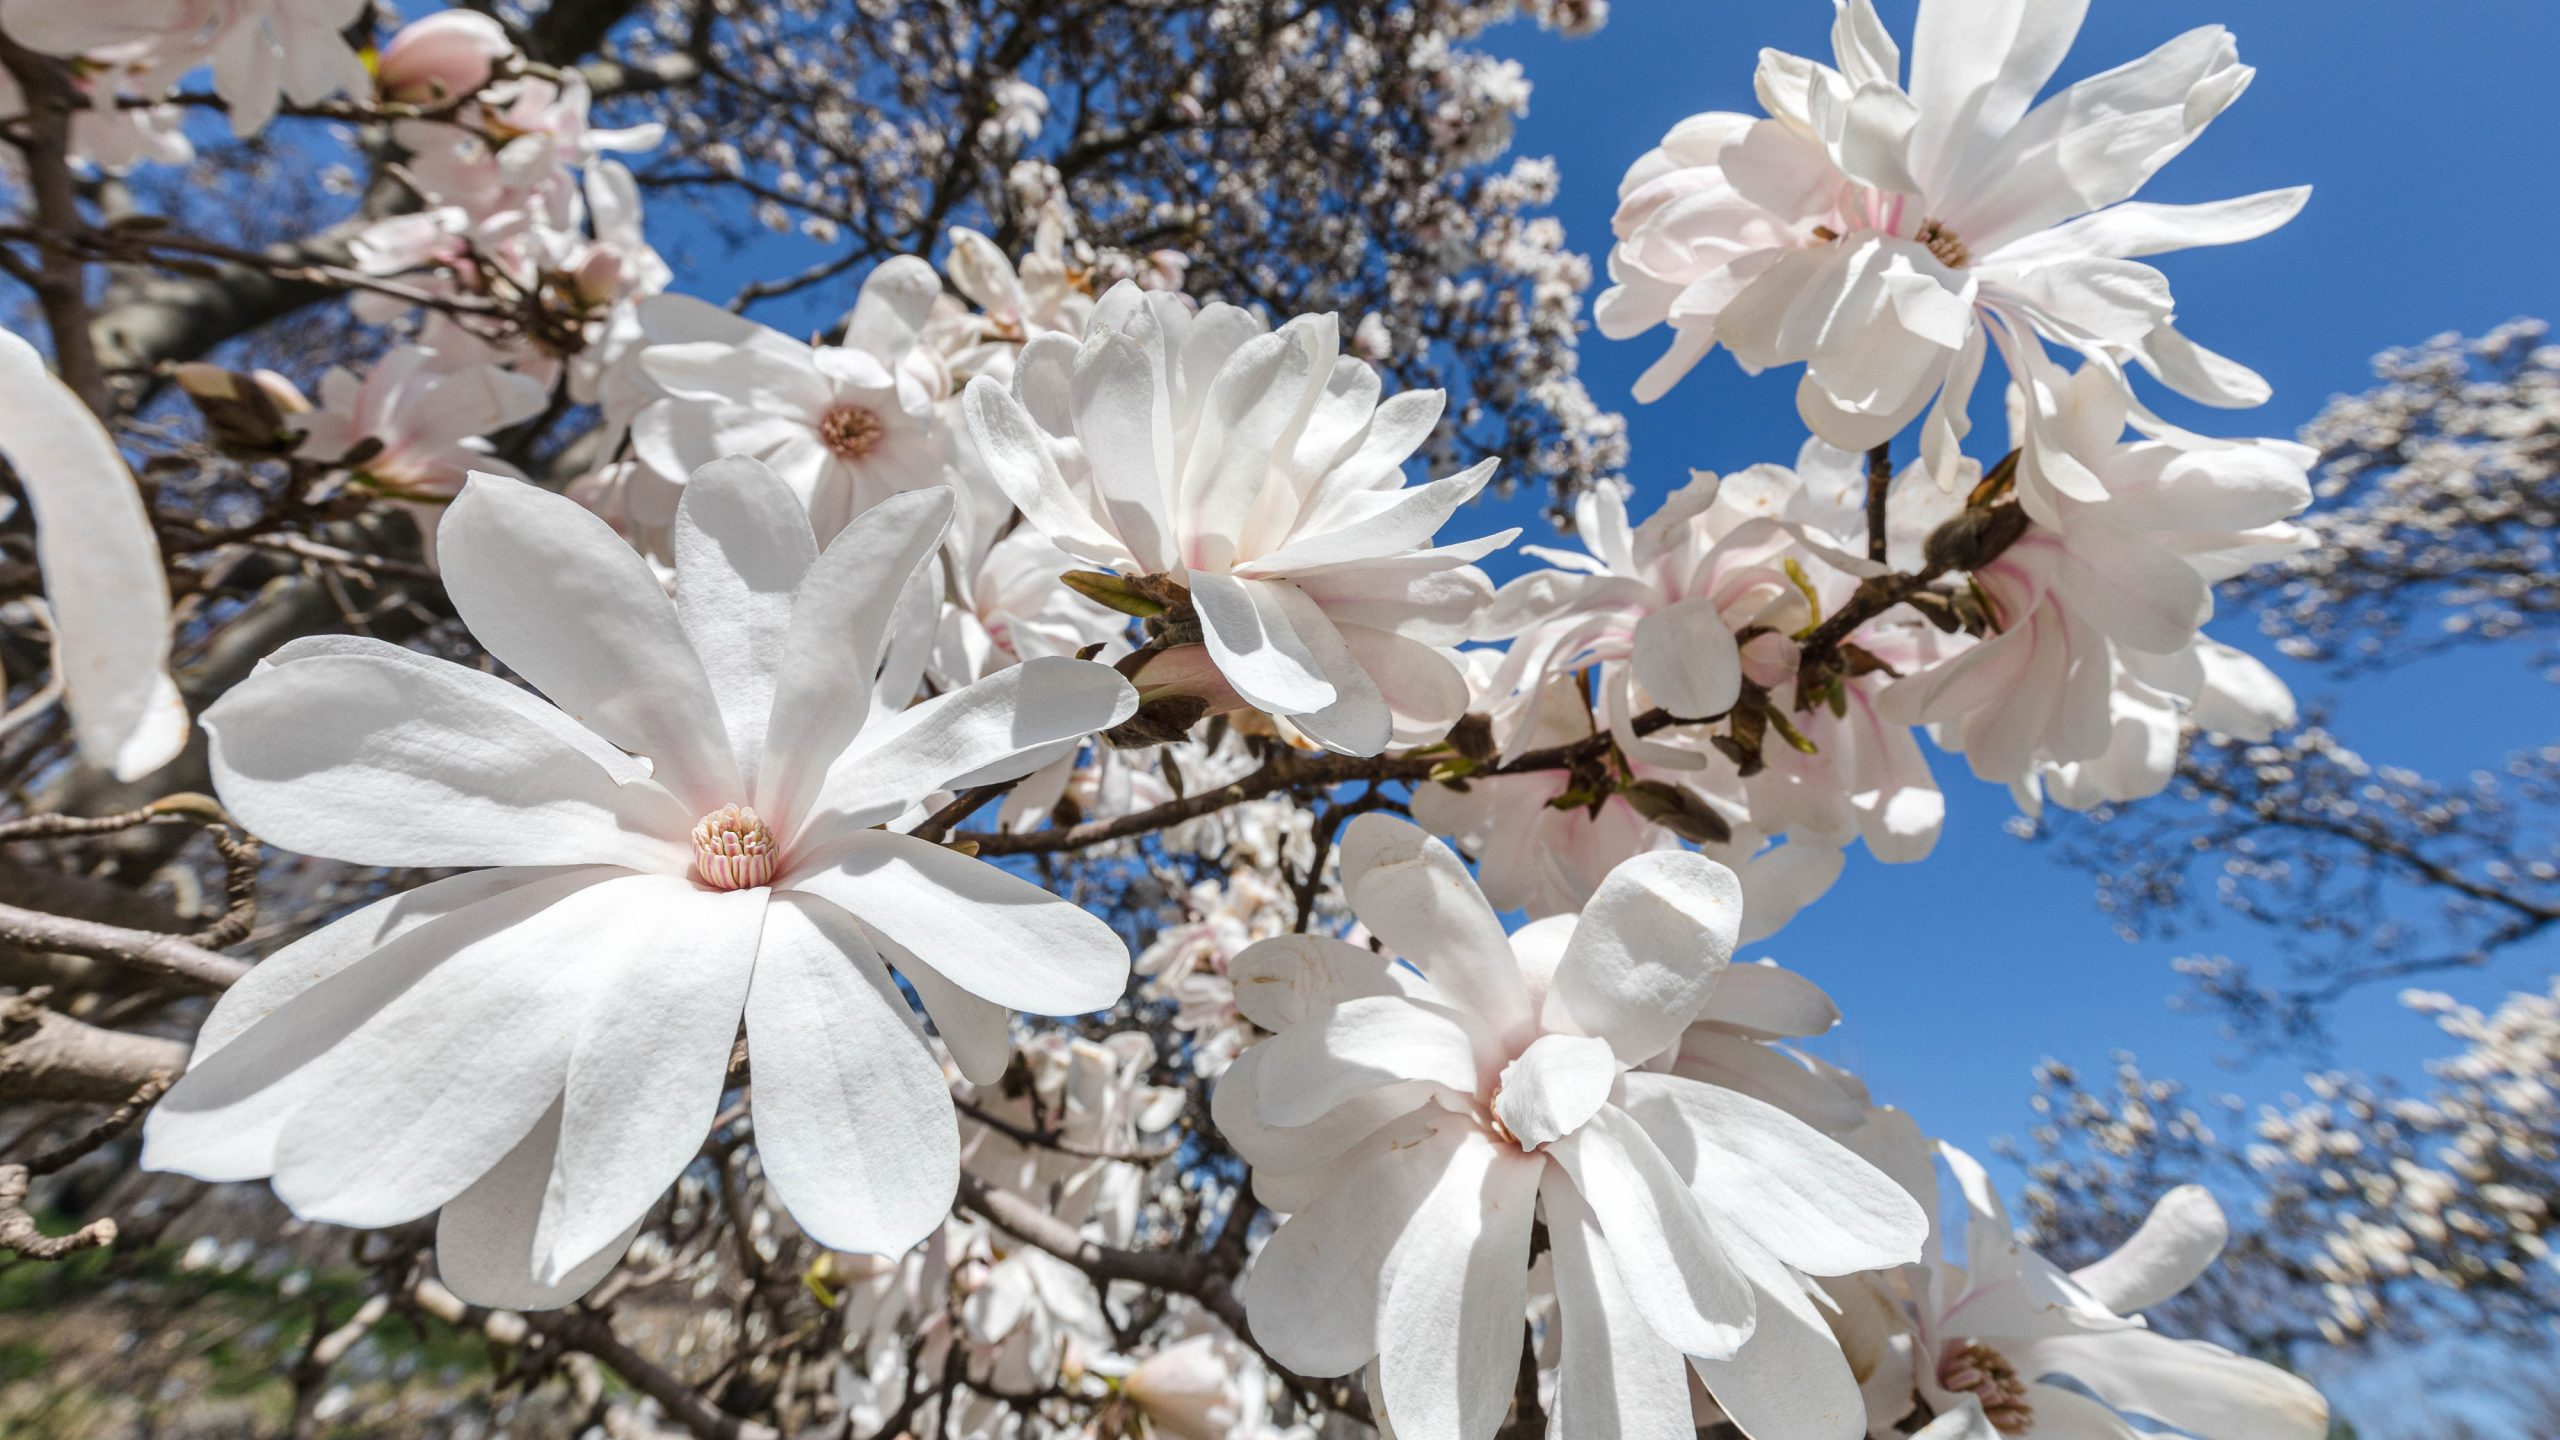 Newly bloomed paper-thin white magnolia flowers against a blue sky